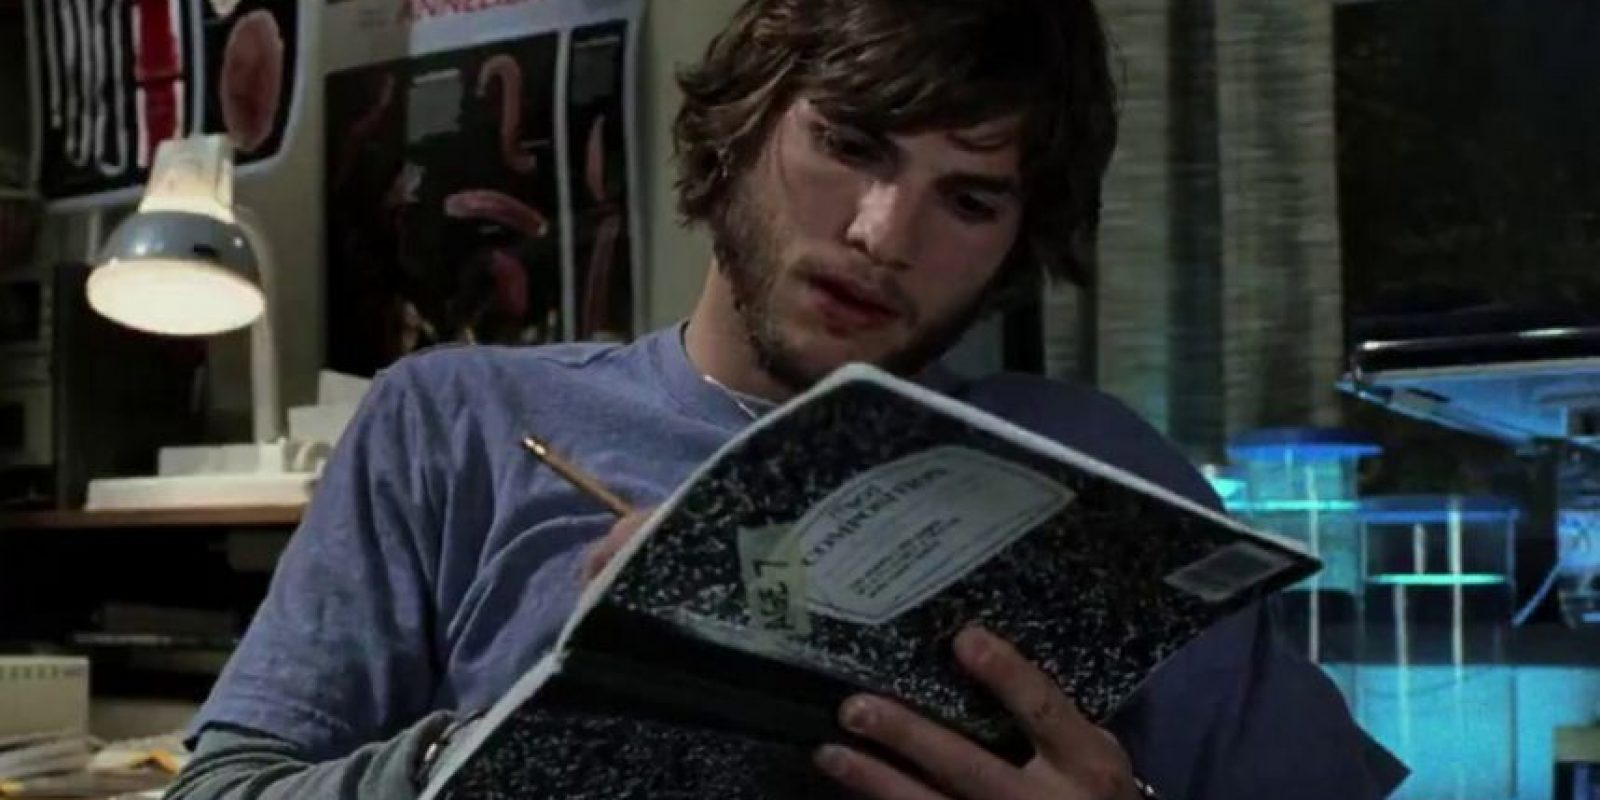 Fue interpretado por Ashton Kutcher en su etapa adulta Foto: Via imbd.com